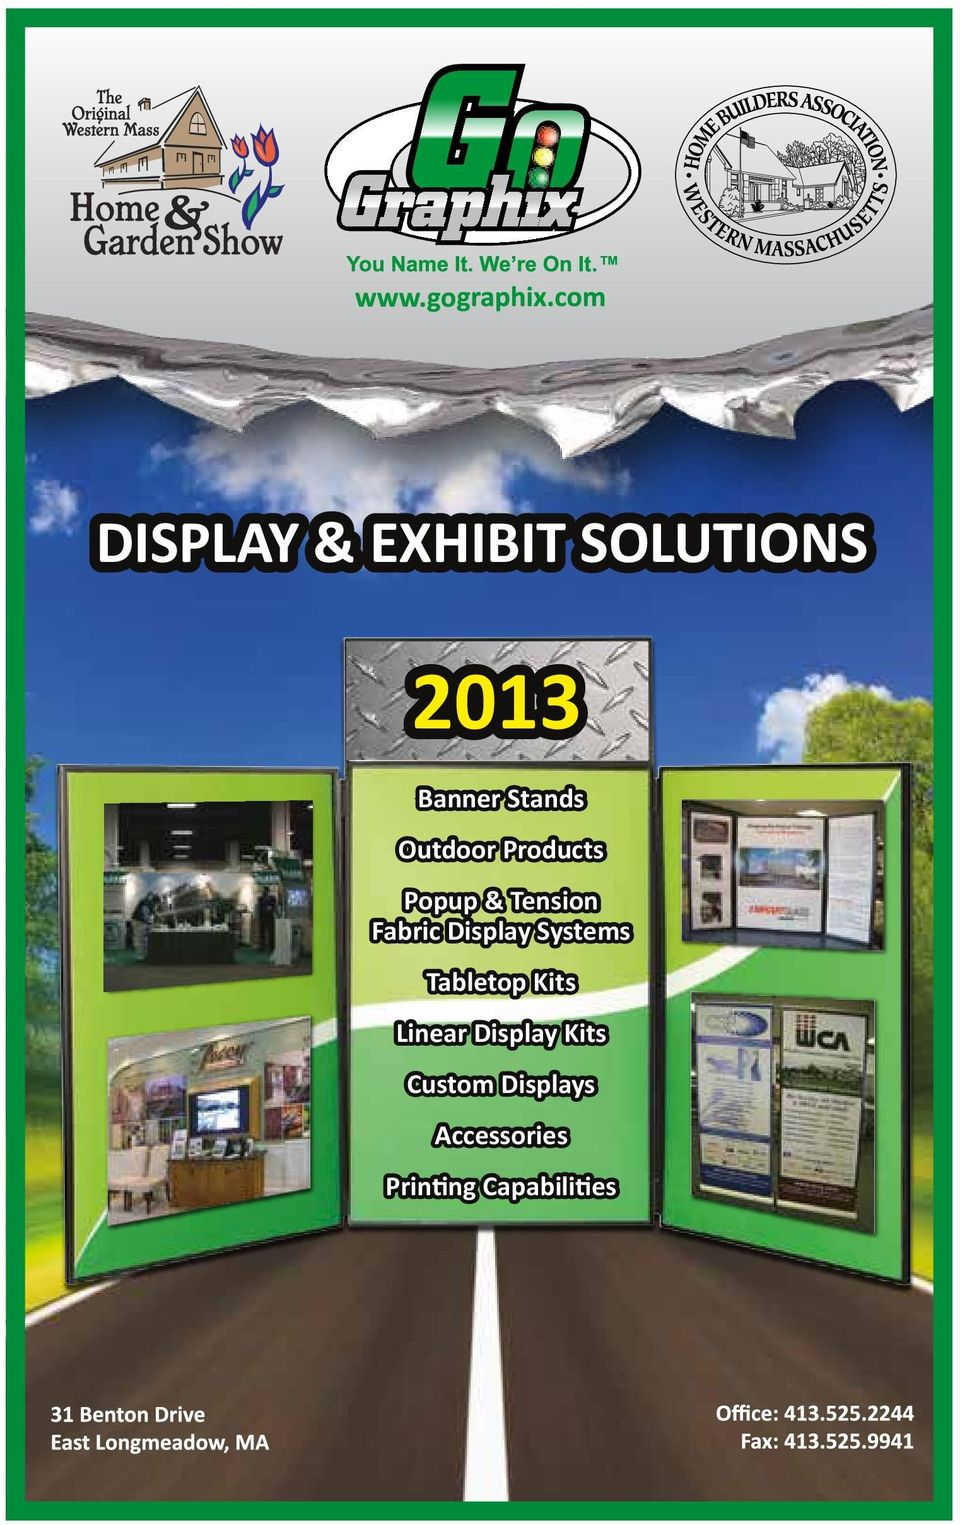 Display Systems Tabletop Kits Linear Display